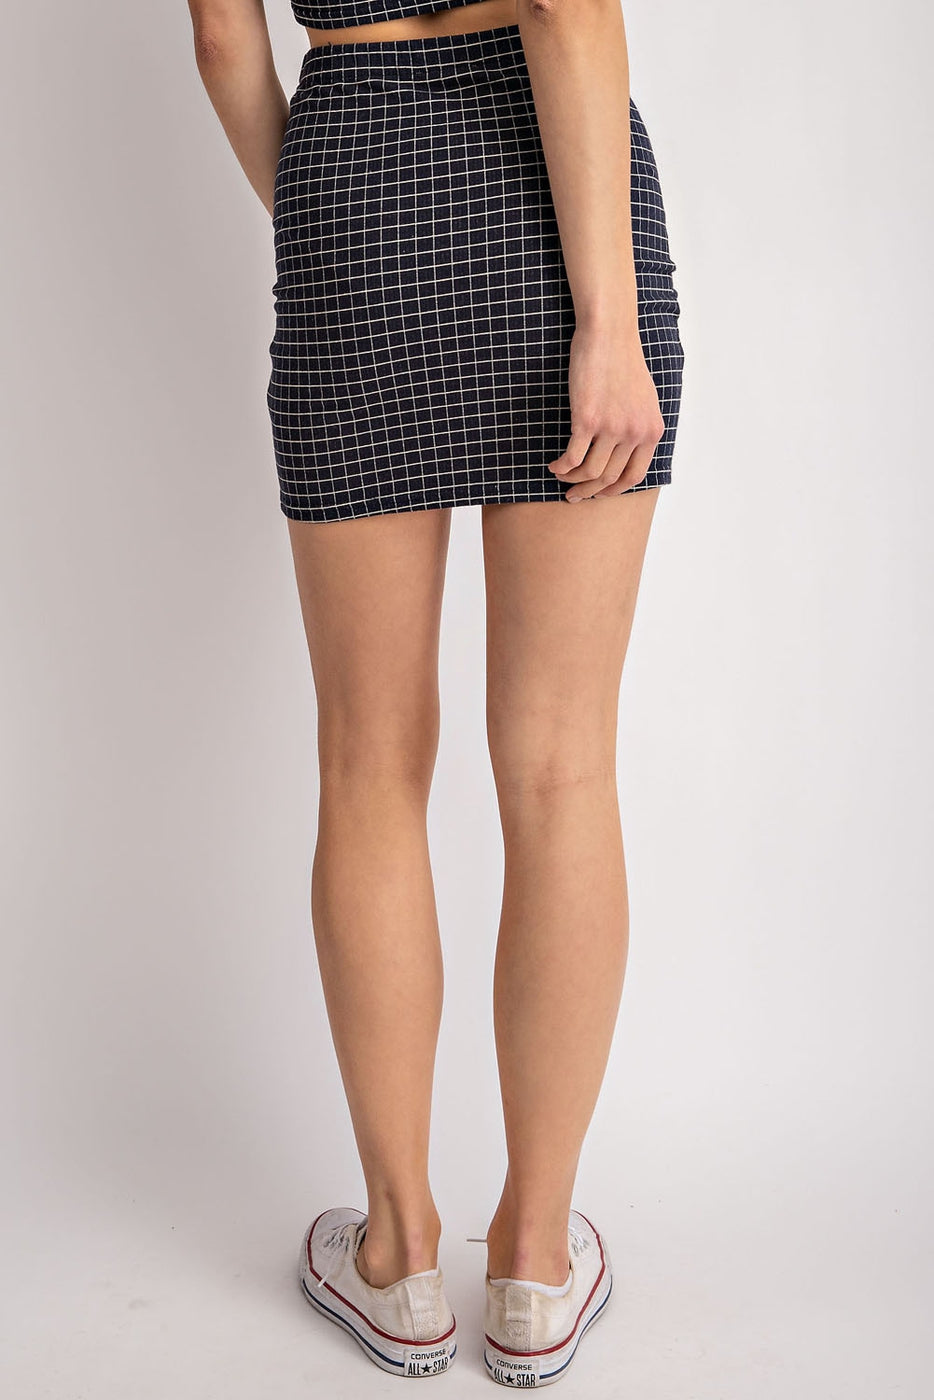 Leilani Mini Skirt With Zip up Stretched Knit In Navy Siin Bees